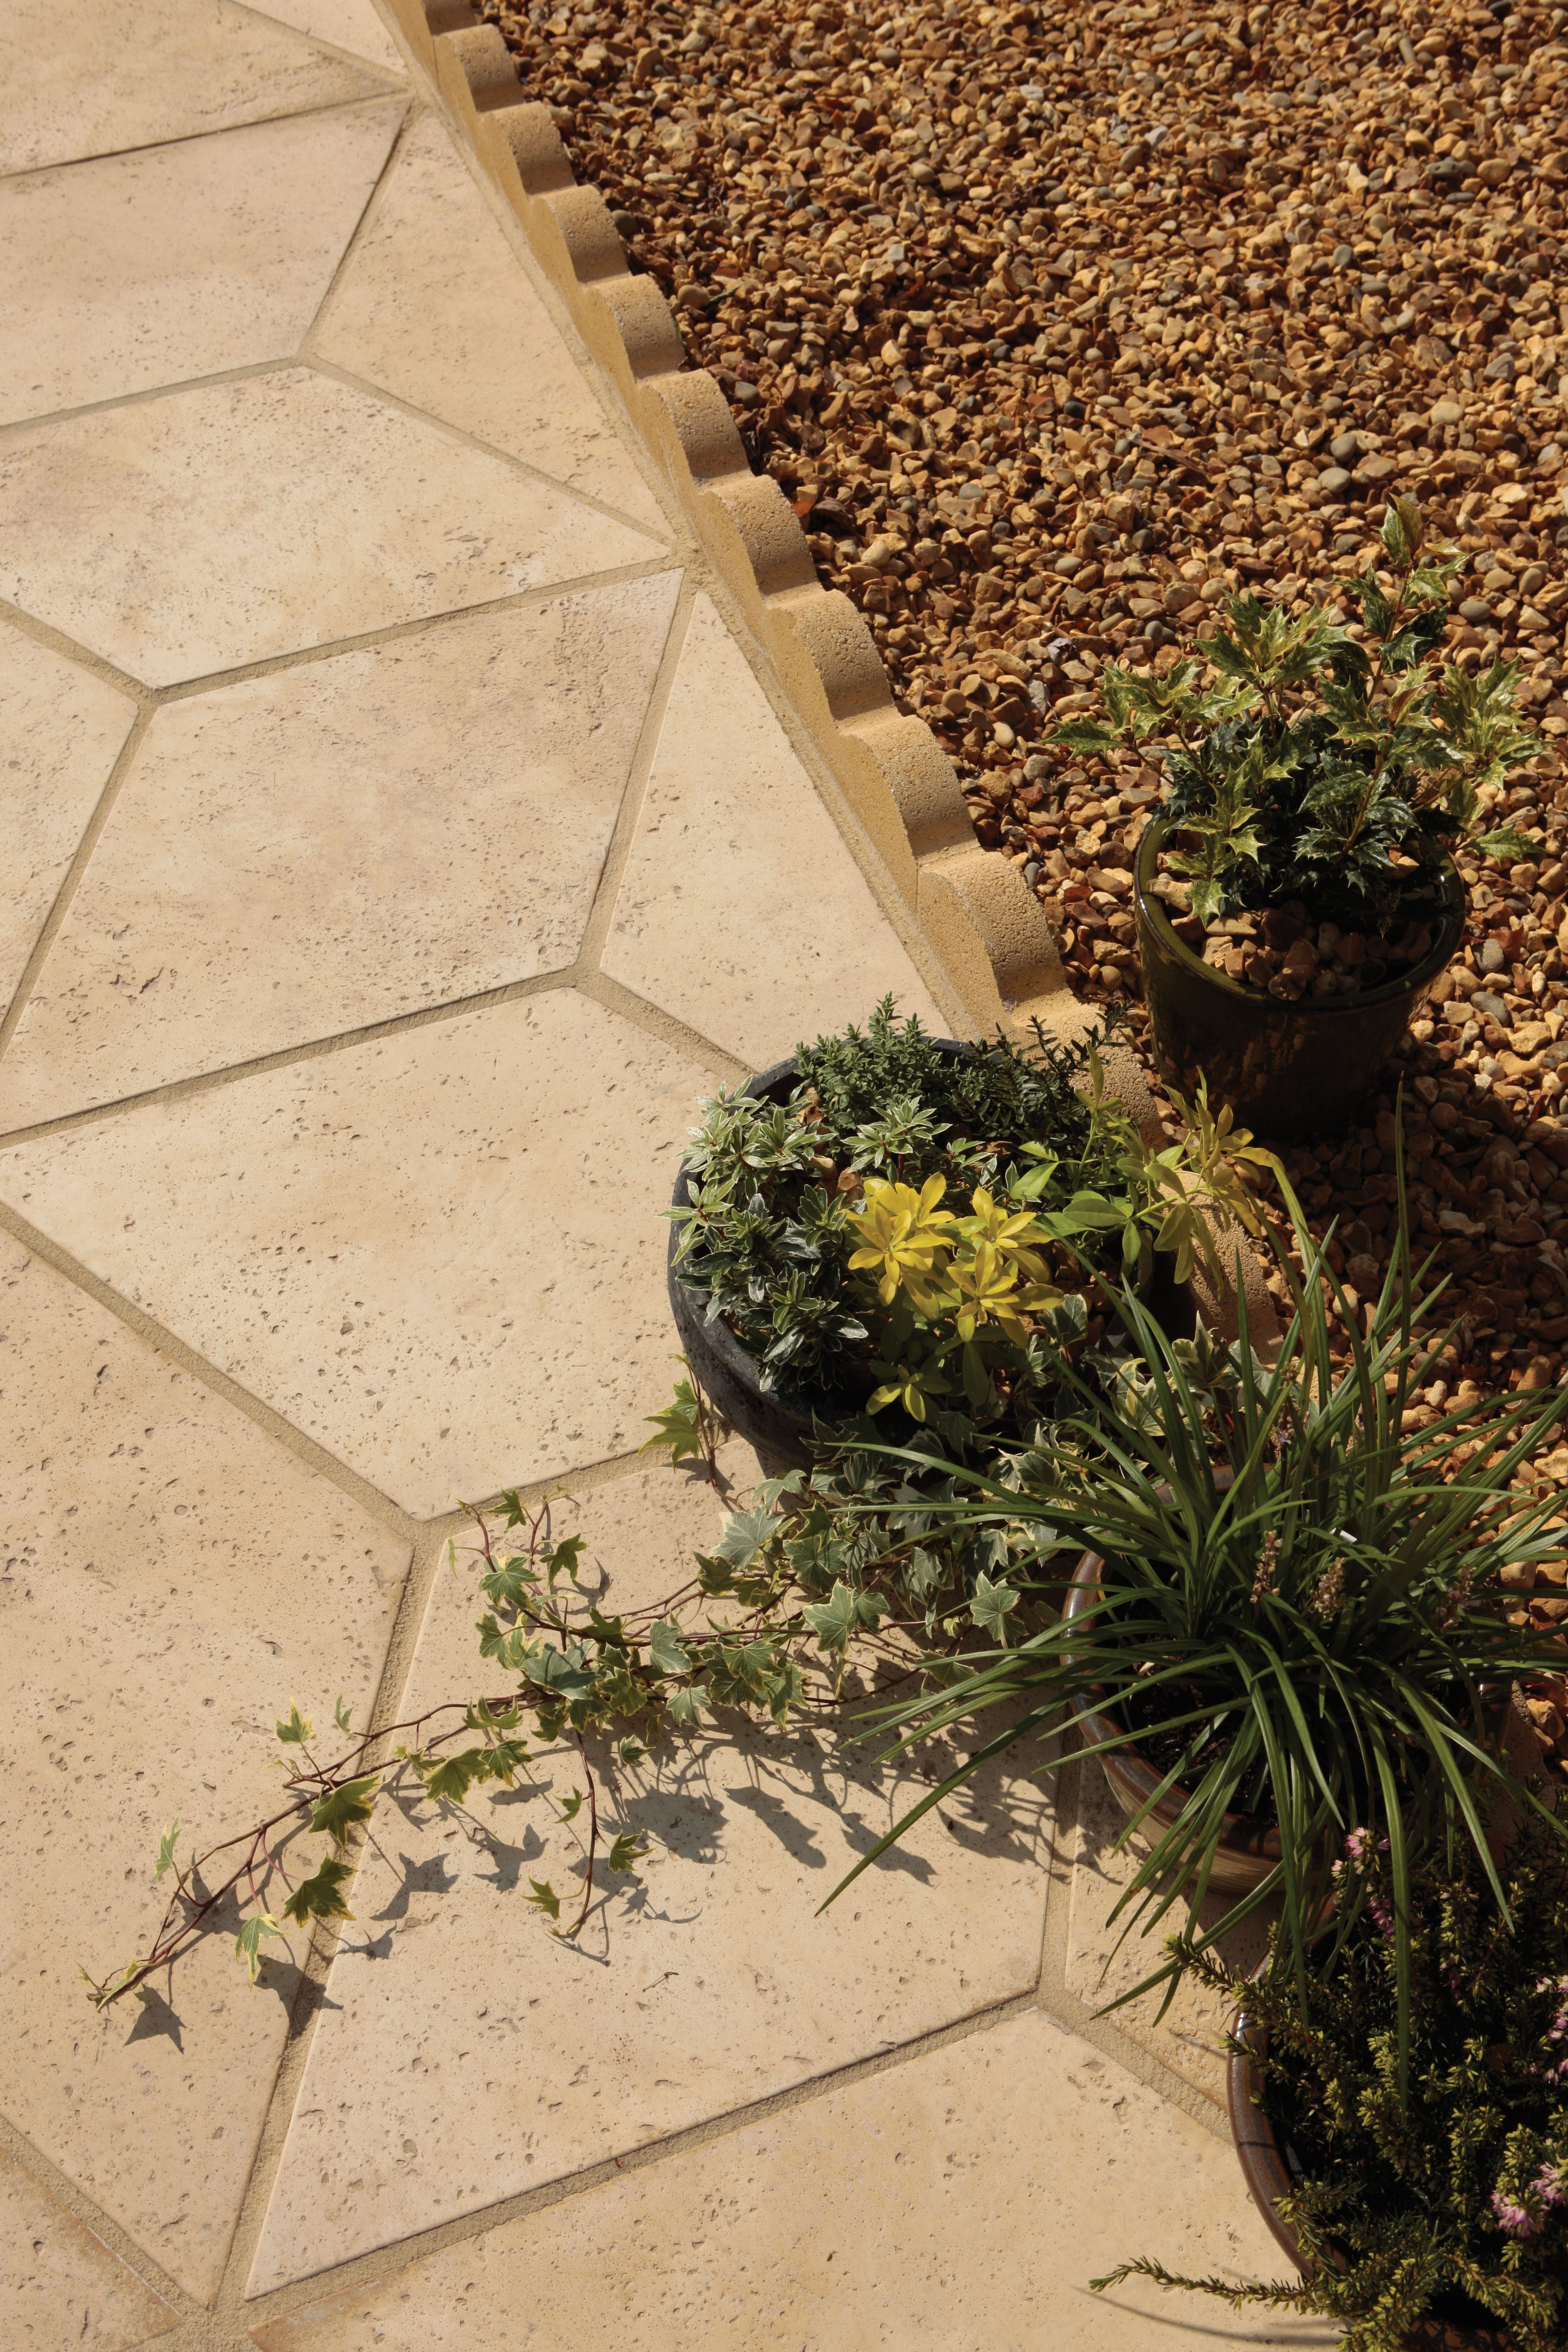 Scalloped Edging Is The Ideal Finish To Really Bring A Contemporary Twist To Your Garden Design With Its Flowing Curv Garden Edging Contemporary Garden Garden